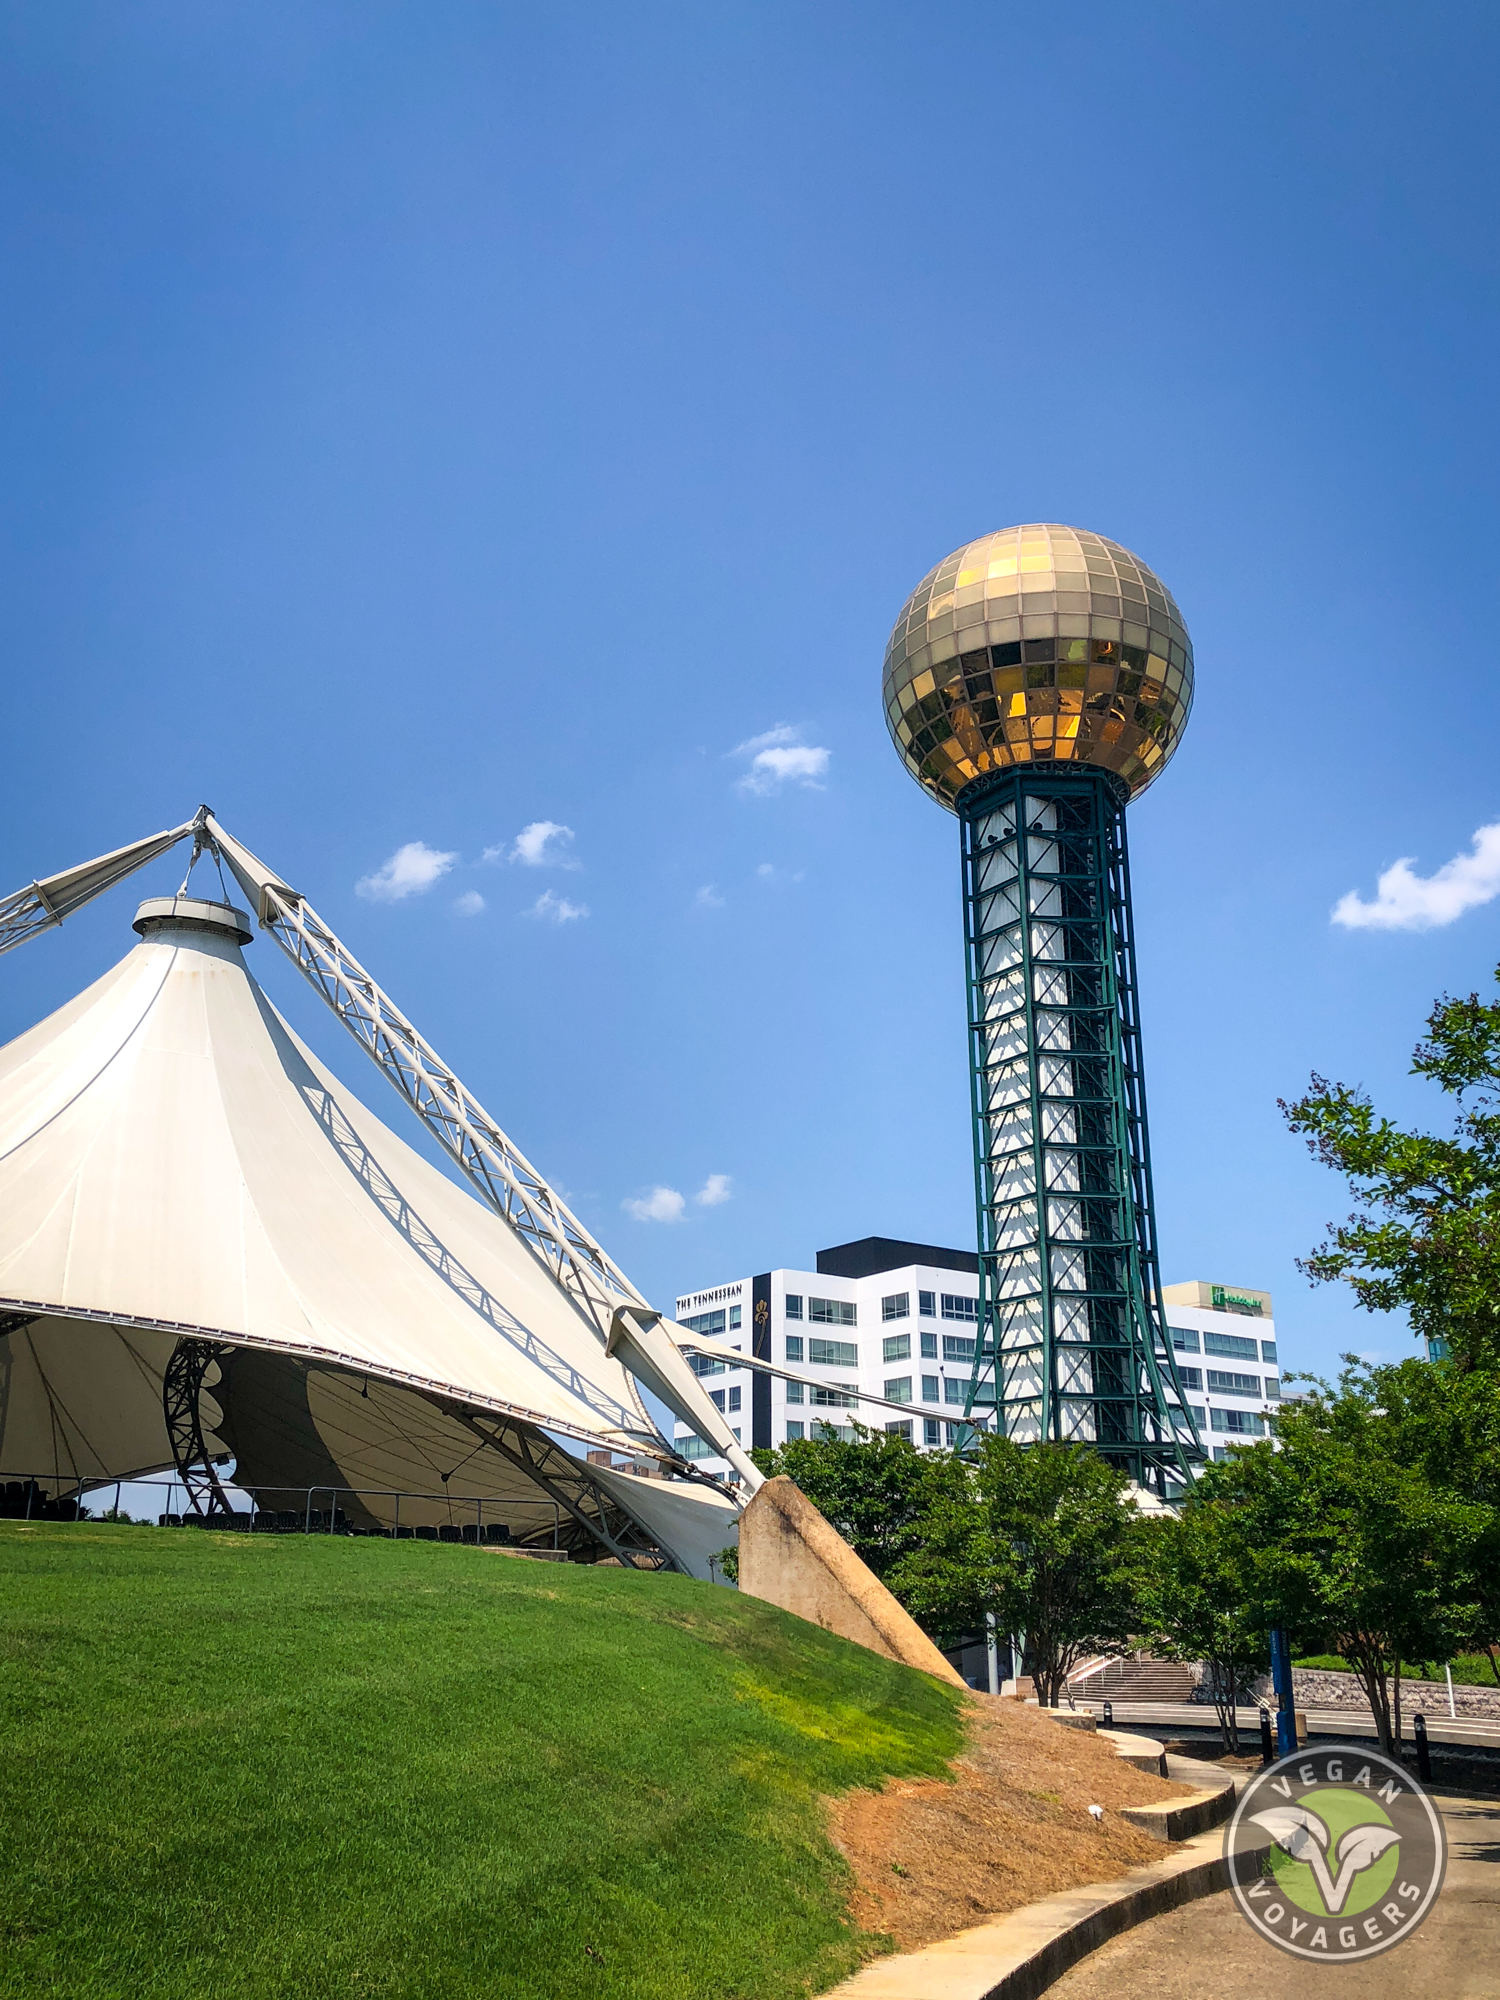 7 FREE Things to do in Knoxville, TN   Vegan Voyagers